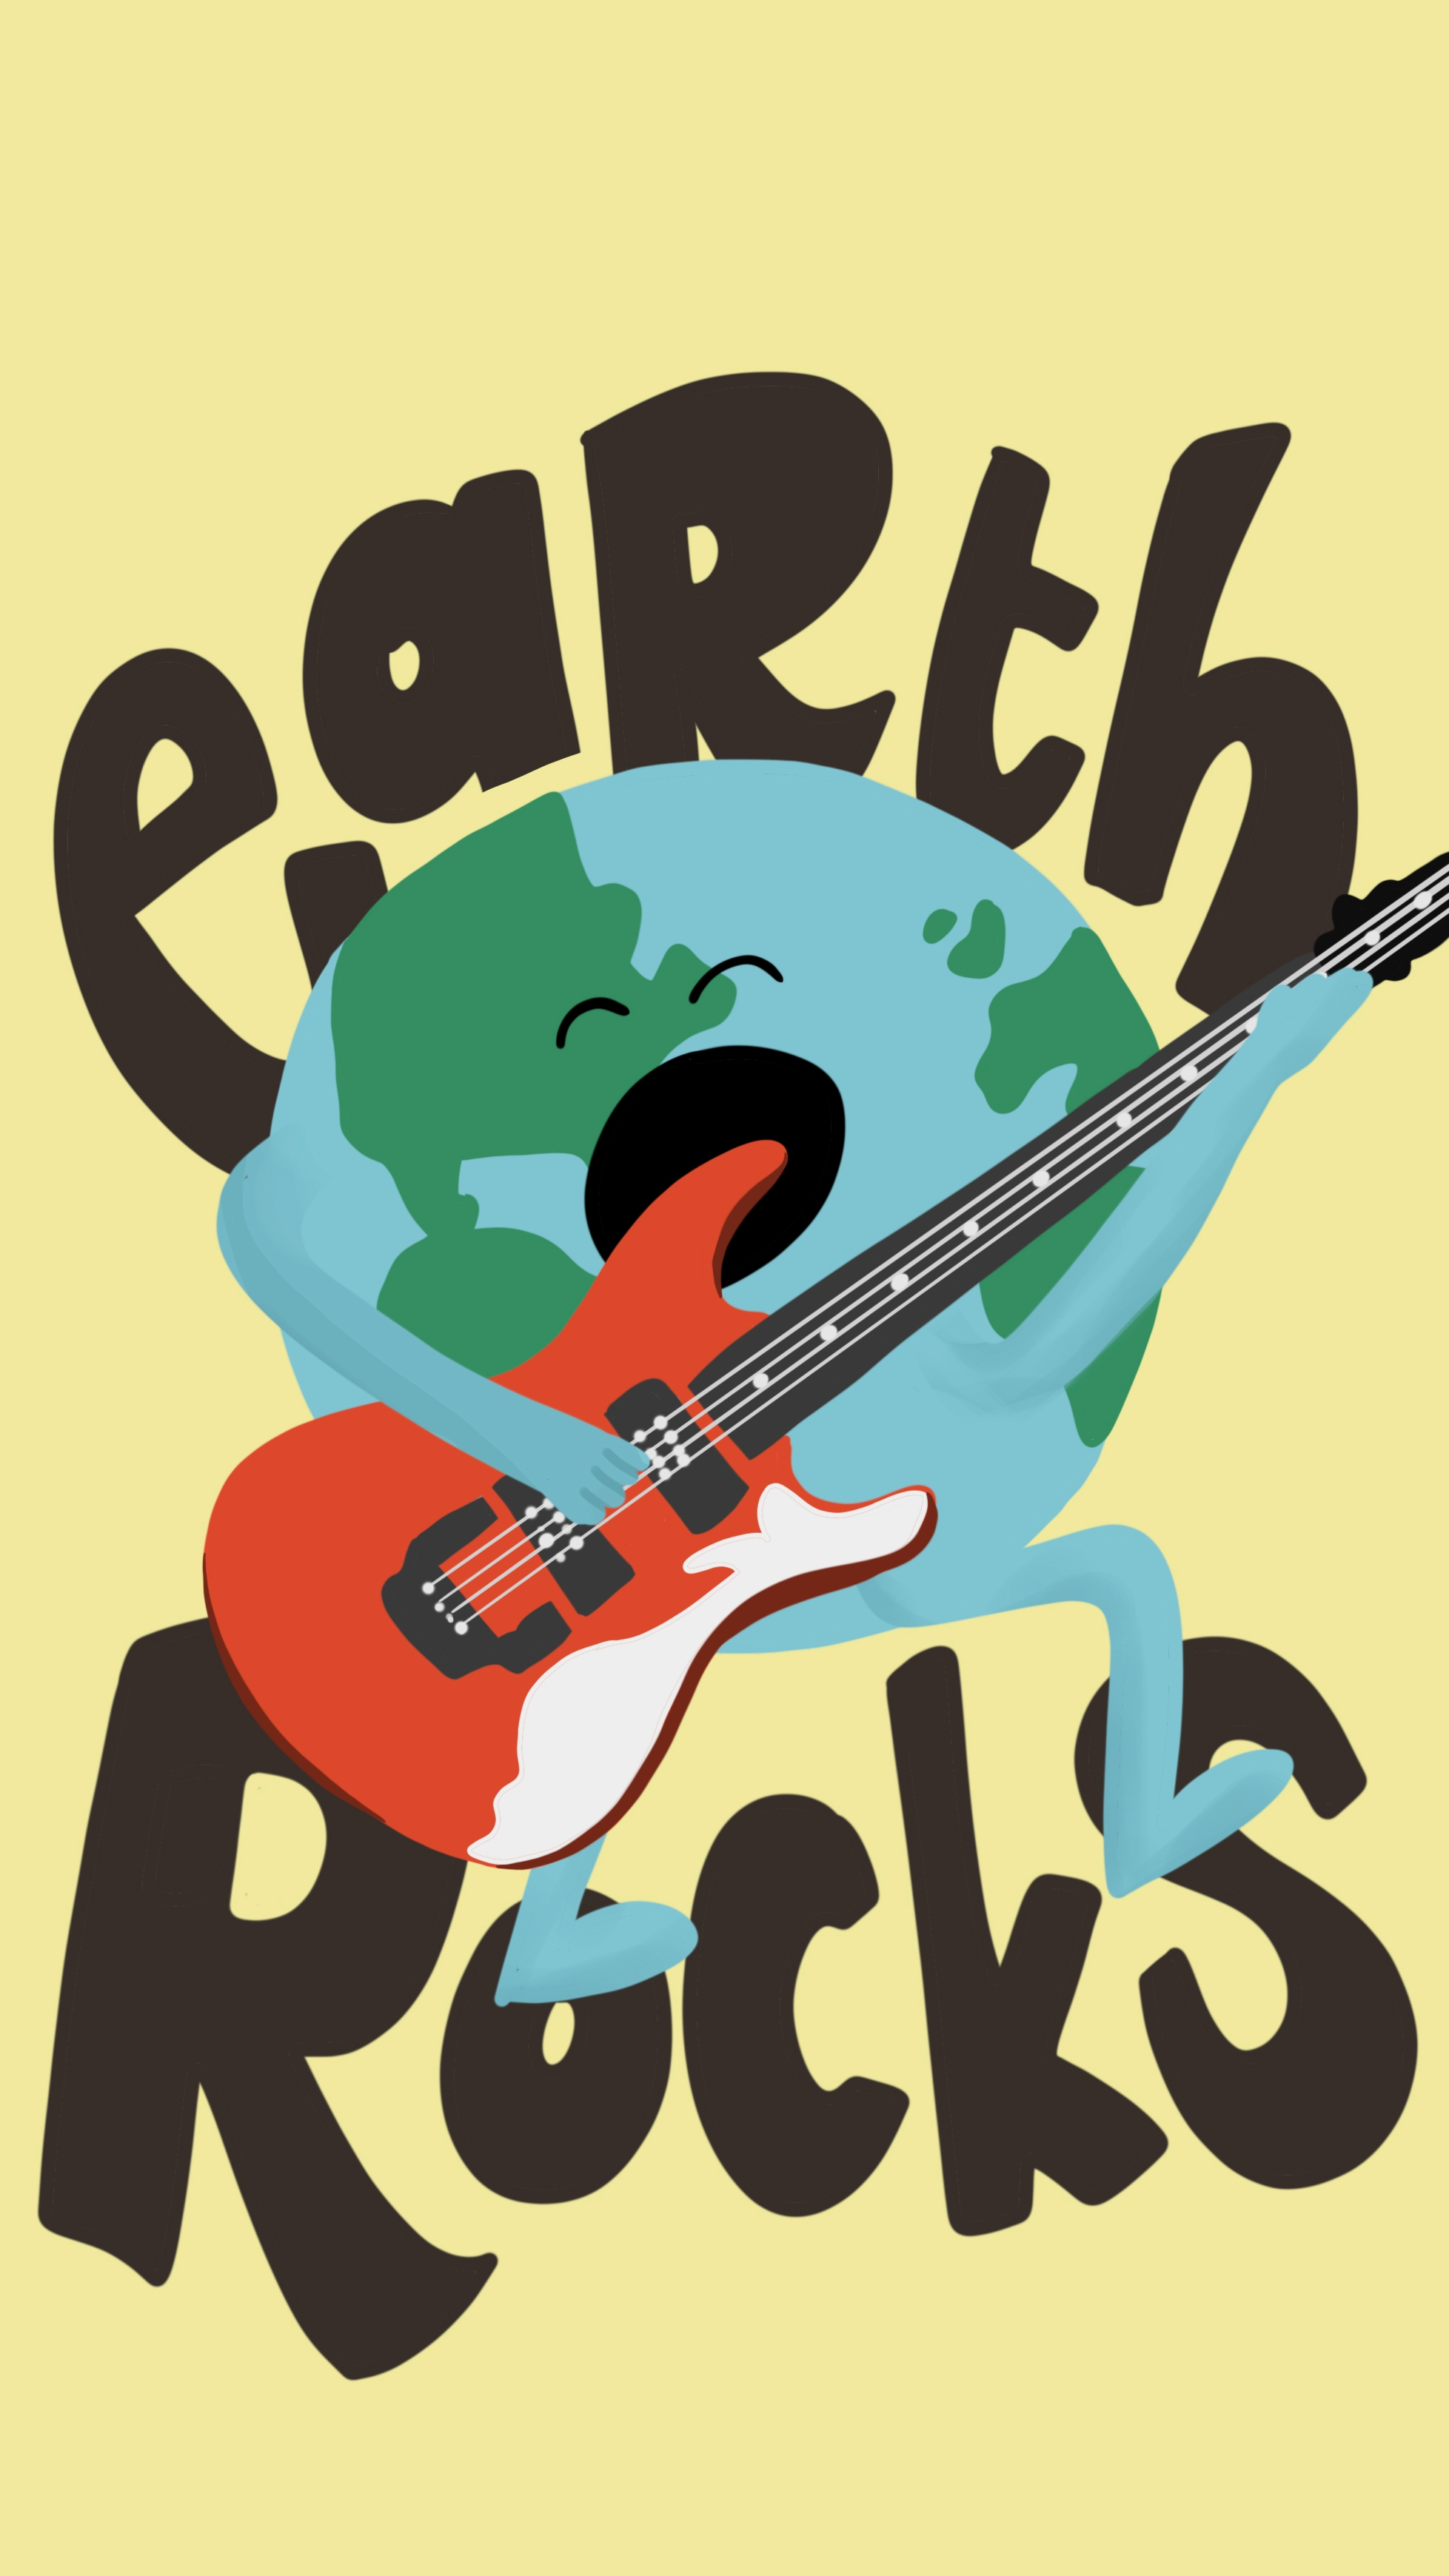 Earth Rocks